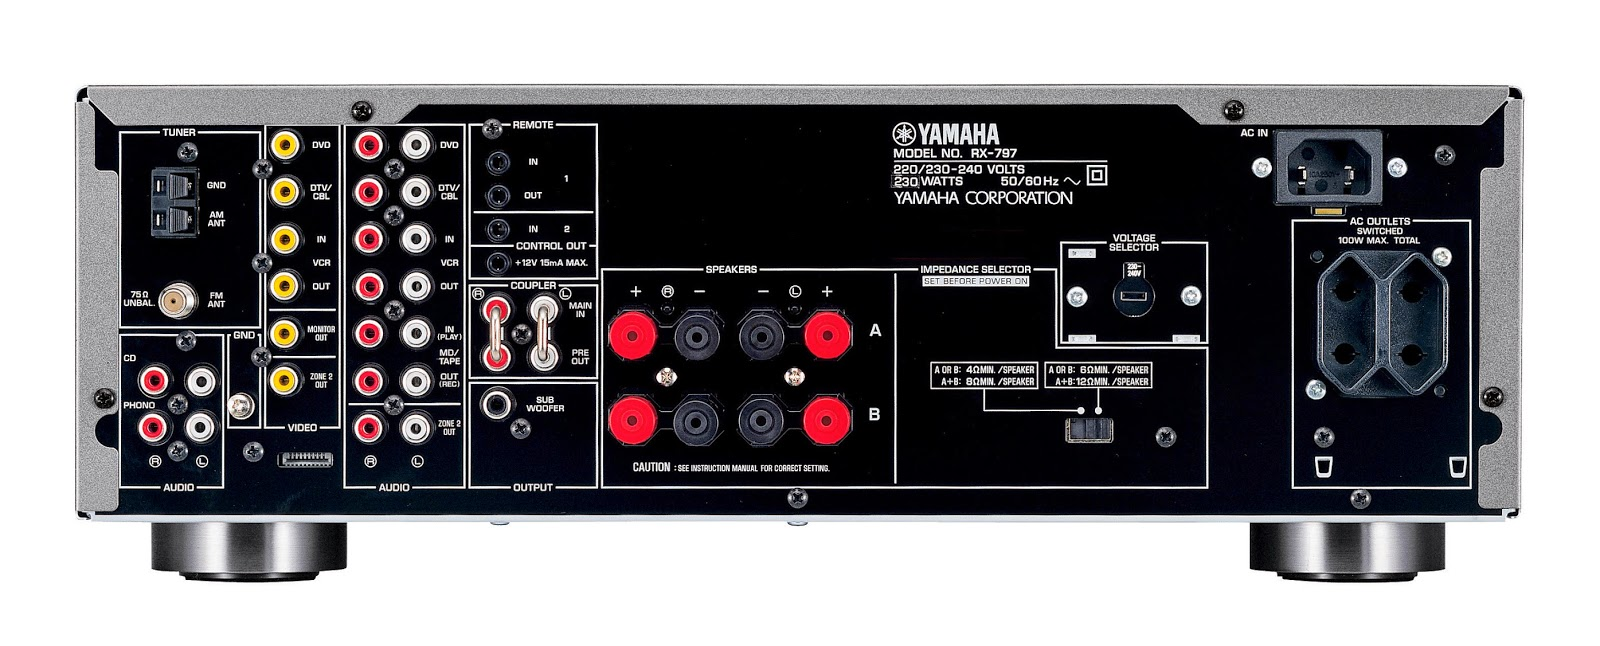 small resolution of yamaha rx v340 service manual download free wrg 7488 whole home audio wiring diagram yamaha rx a1050 rx v359 yamaha av receivers service manual ampli